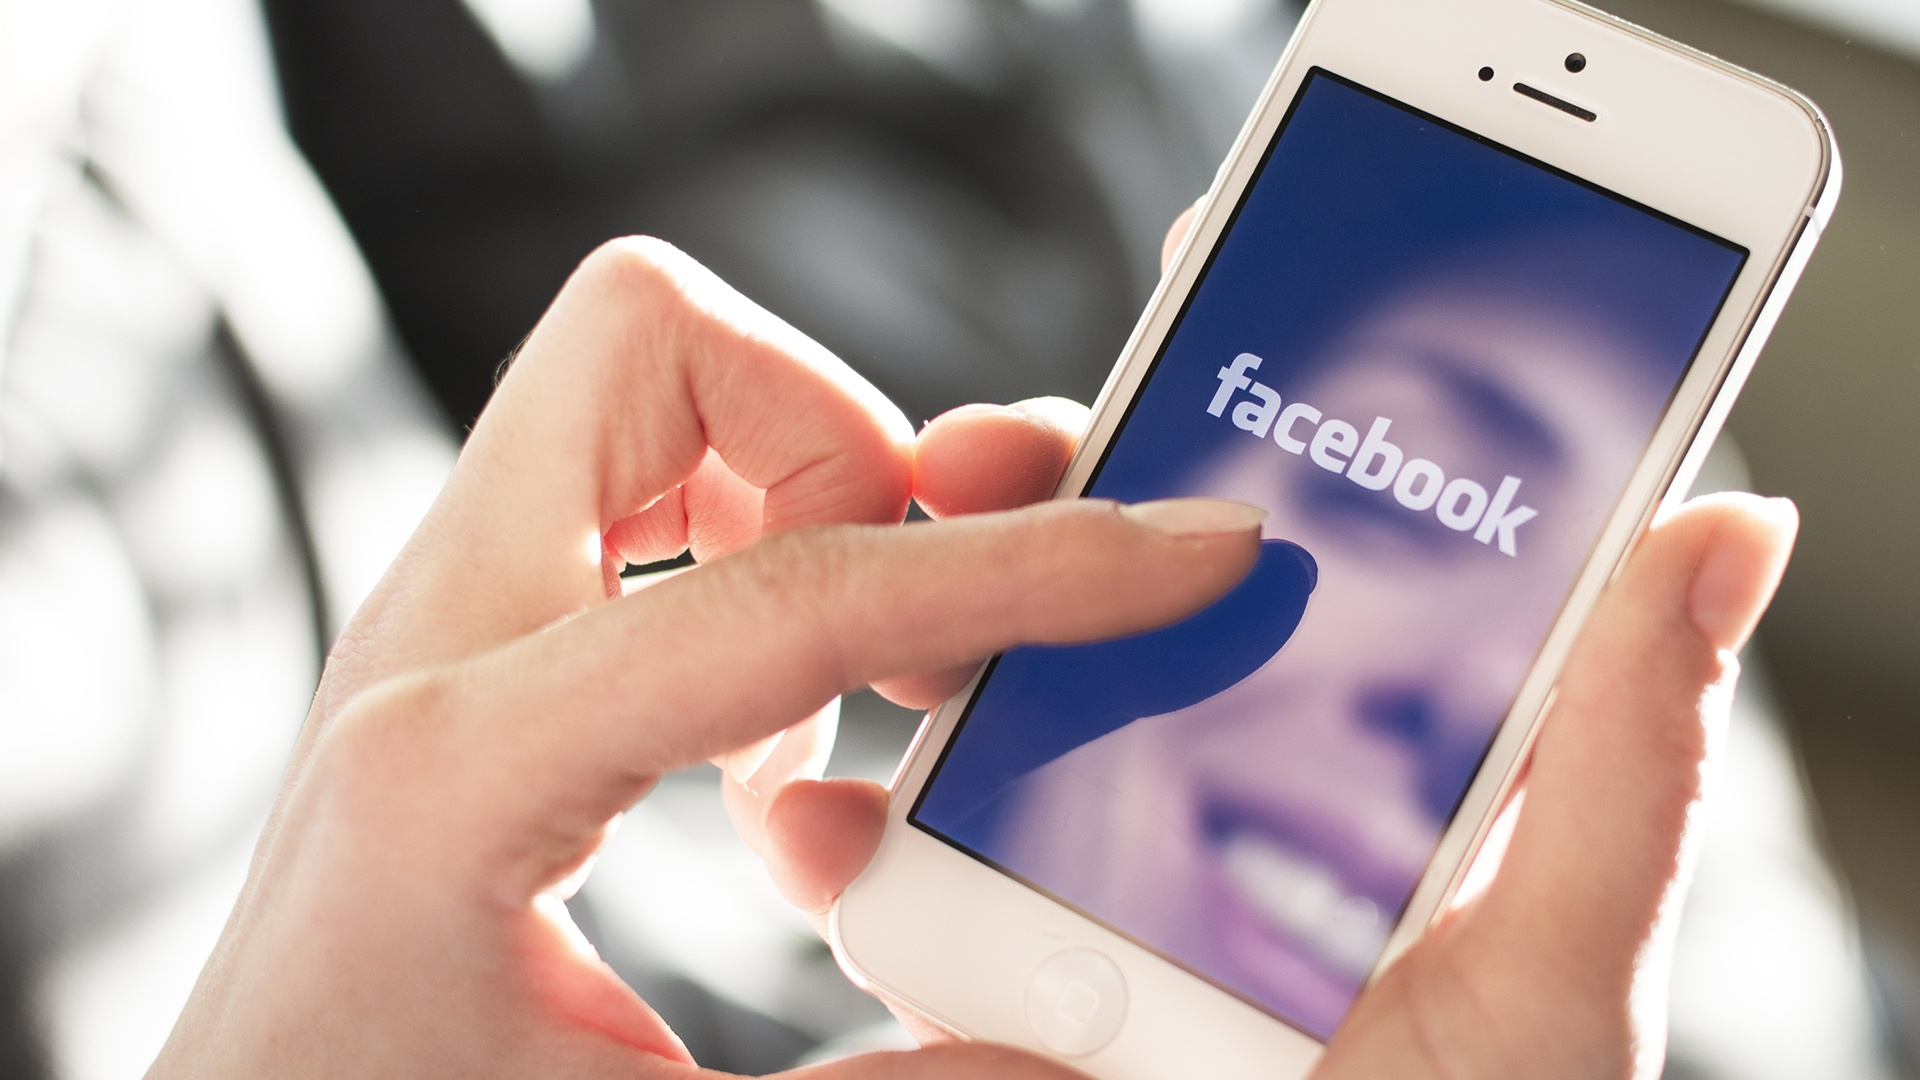 Facebook and consumer engagement go hand in hand